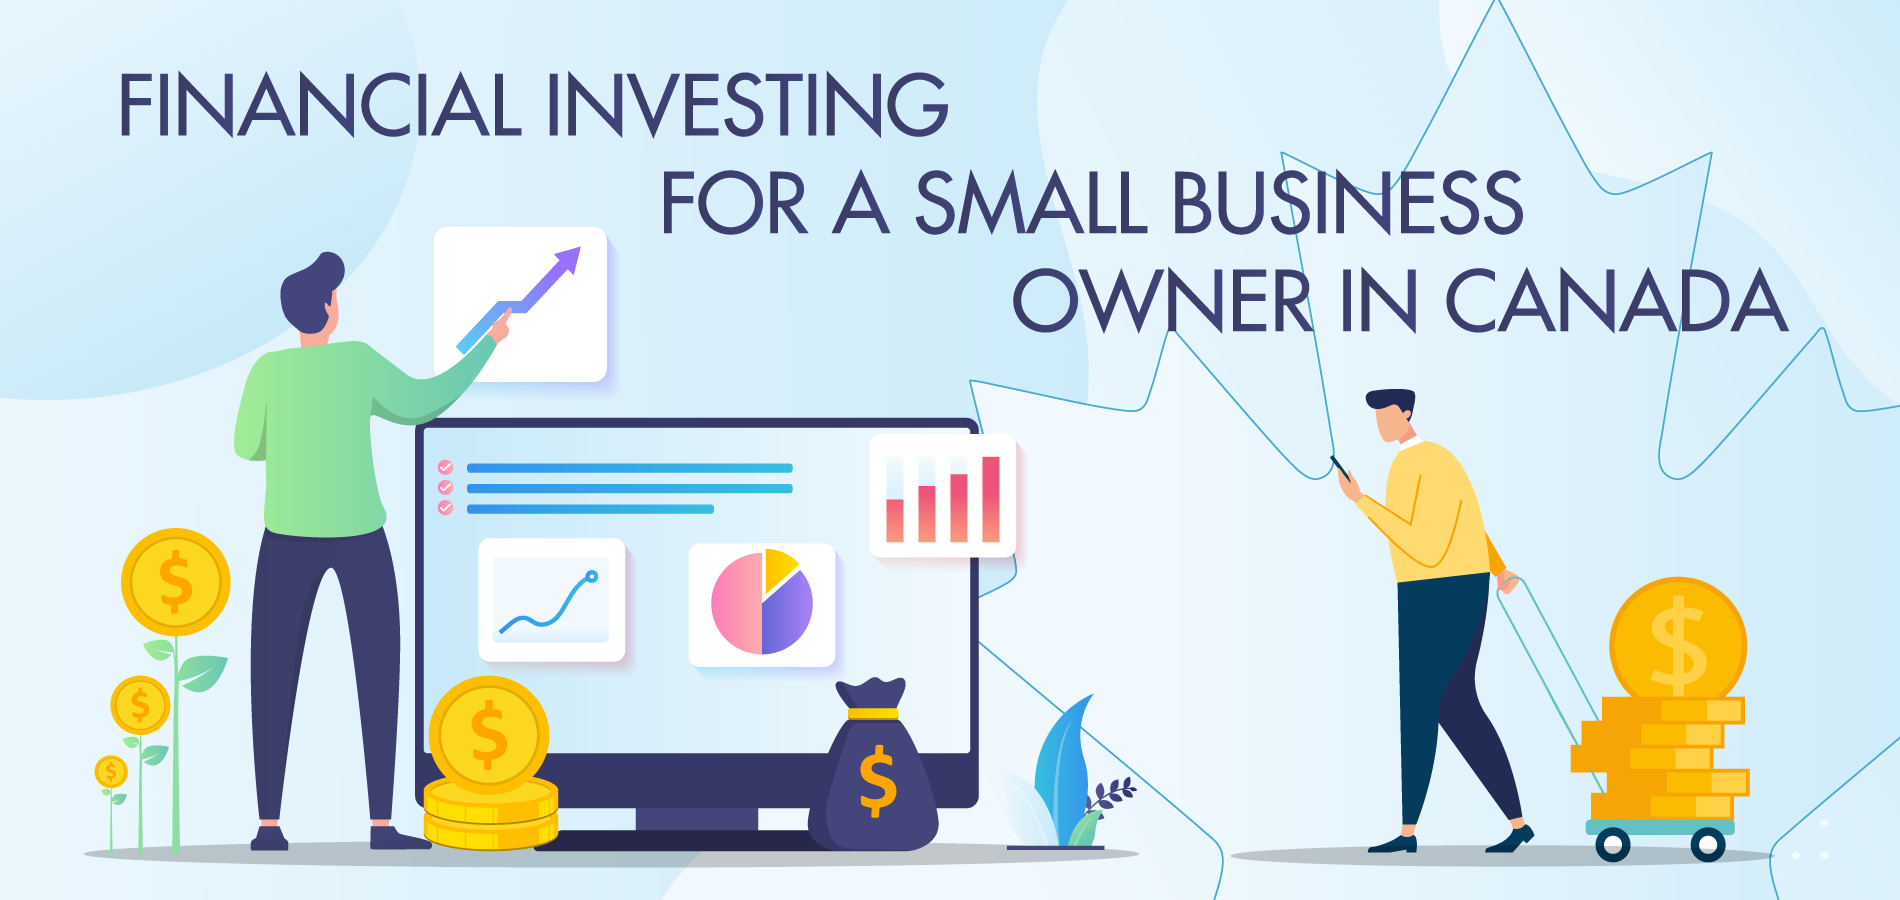 Financial Investing for a Small Business Owner in Canada